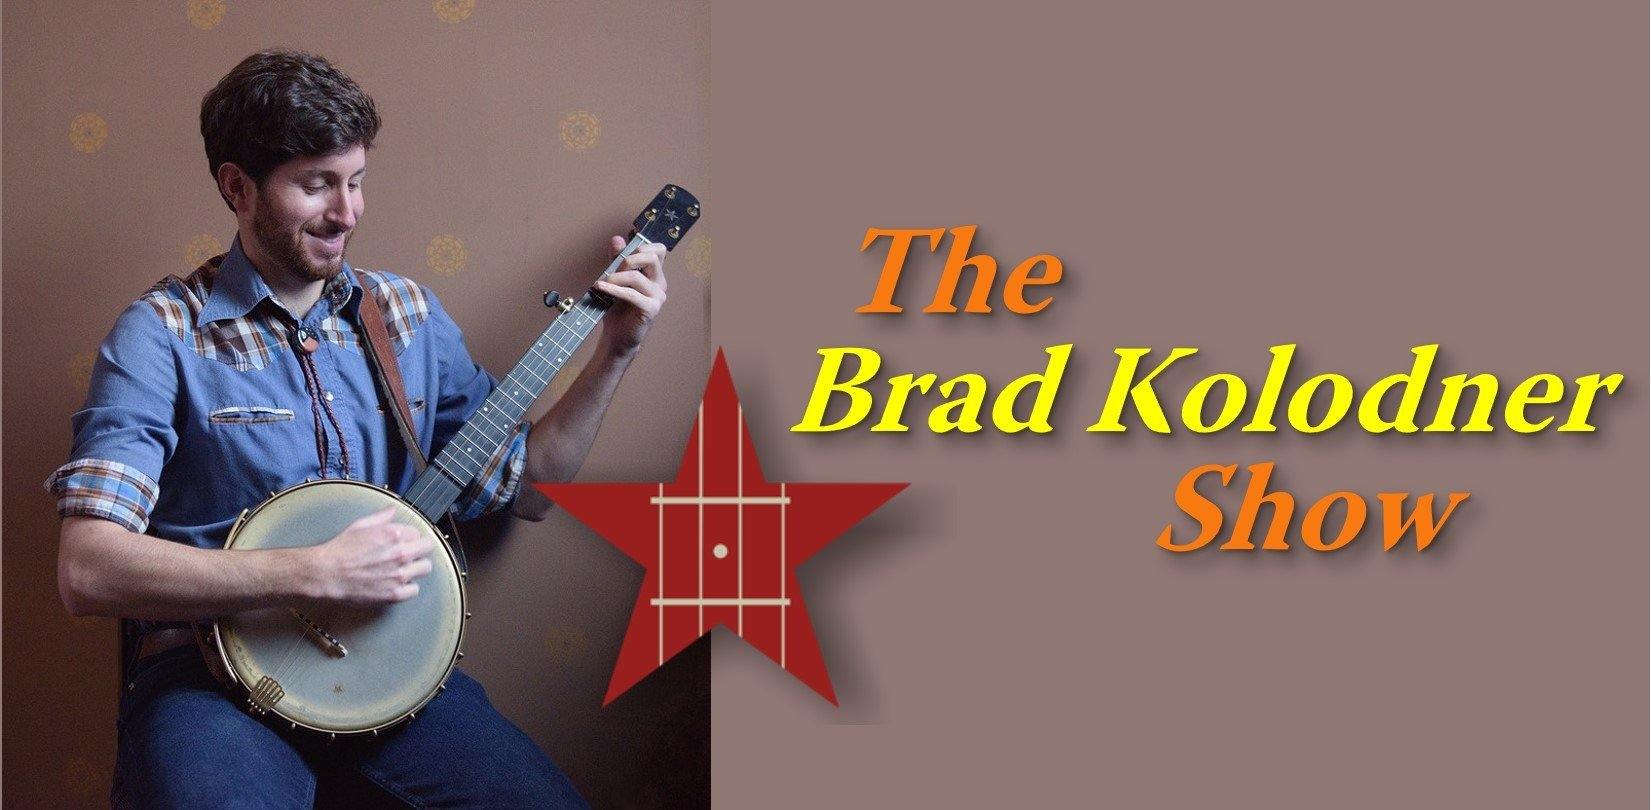 The Brad Kolodner Show